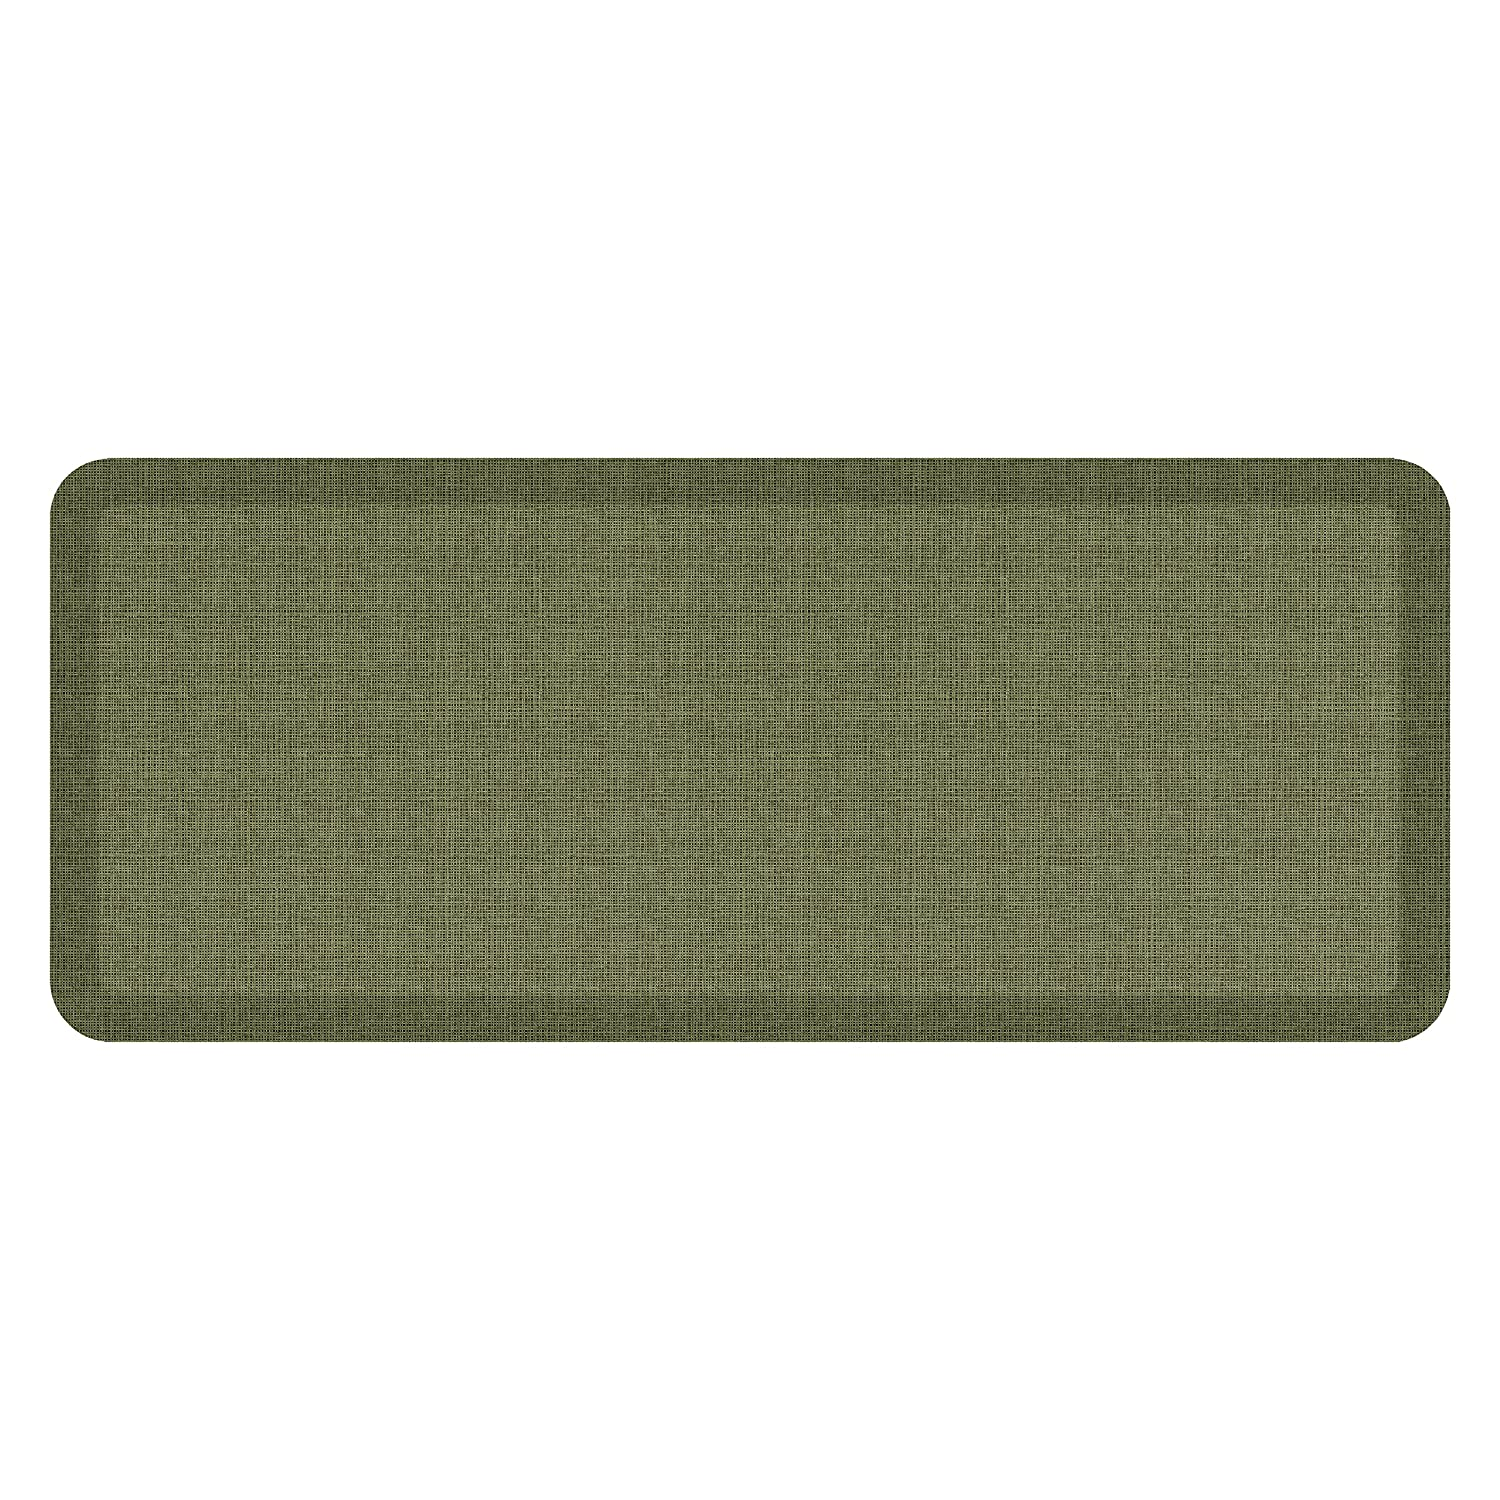 Tweed Green Valley 20  x 48  NewLife by GelPro Designer Comfort Mat, 20 by 72-Inch, Lattice Mineral Grey